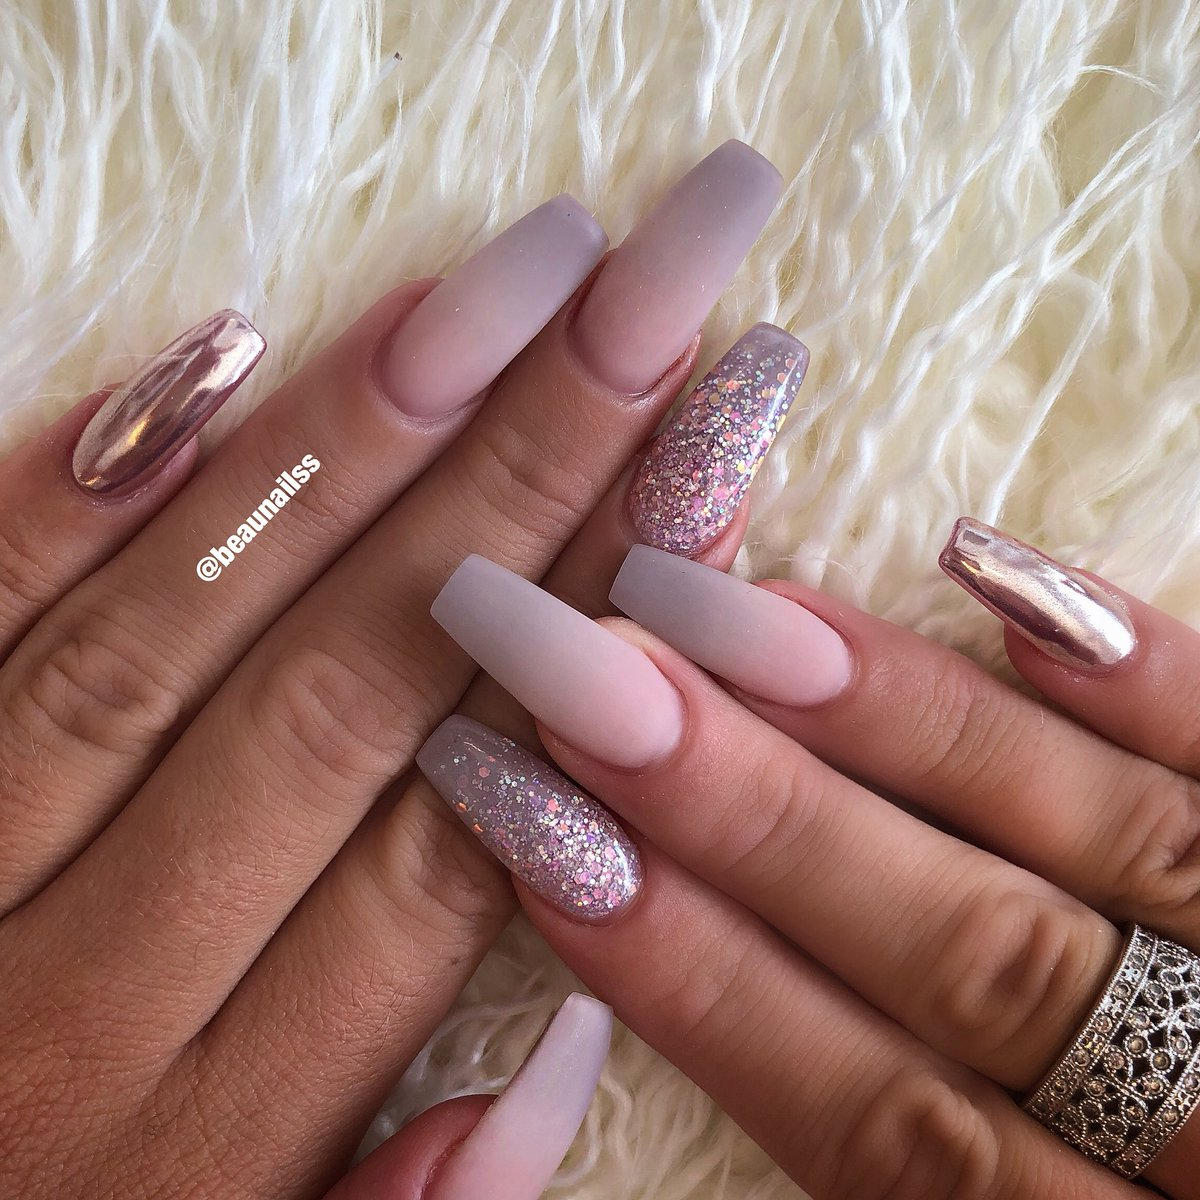 acrylicnails hashtag on Twitter